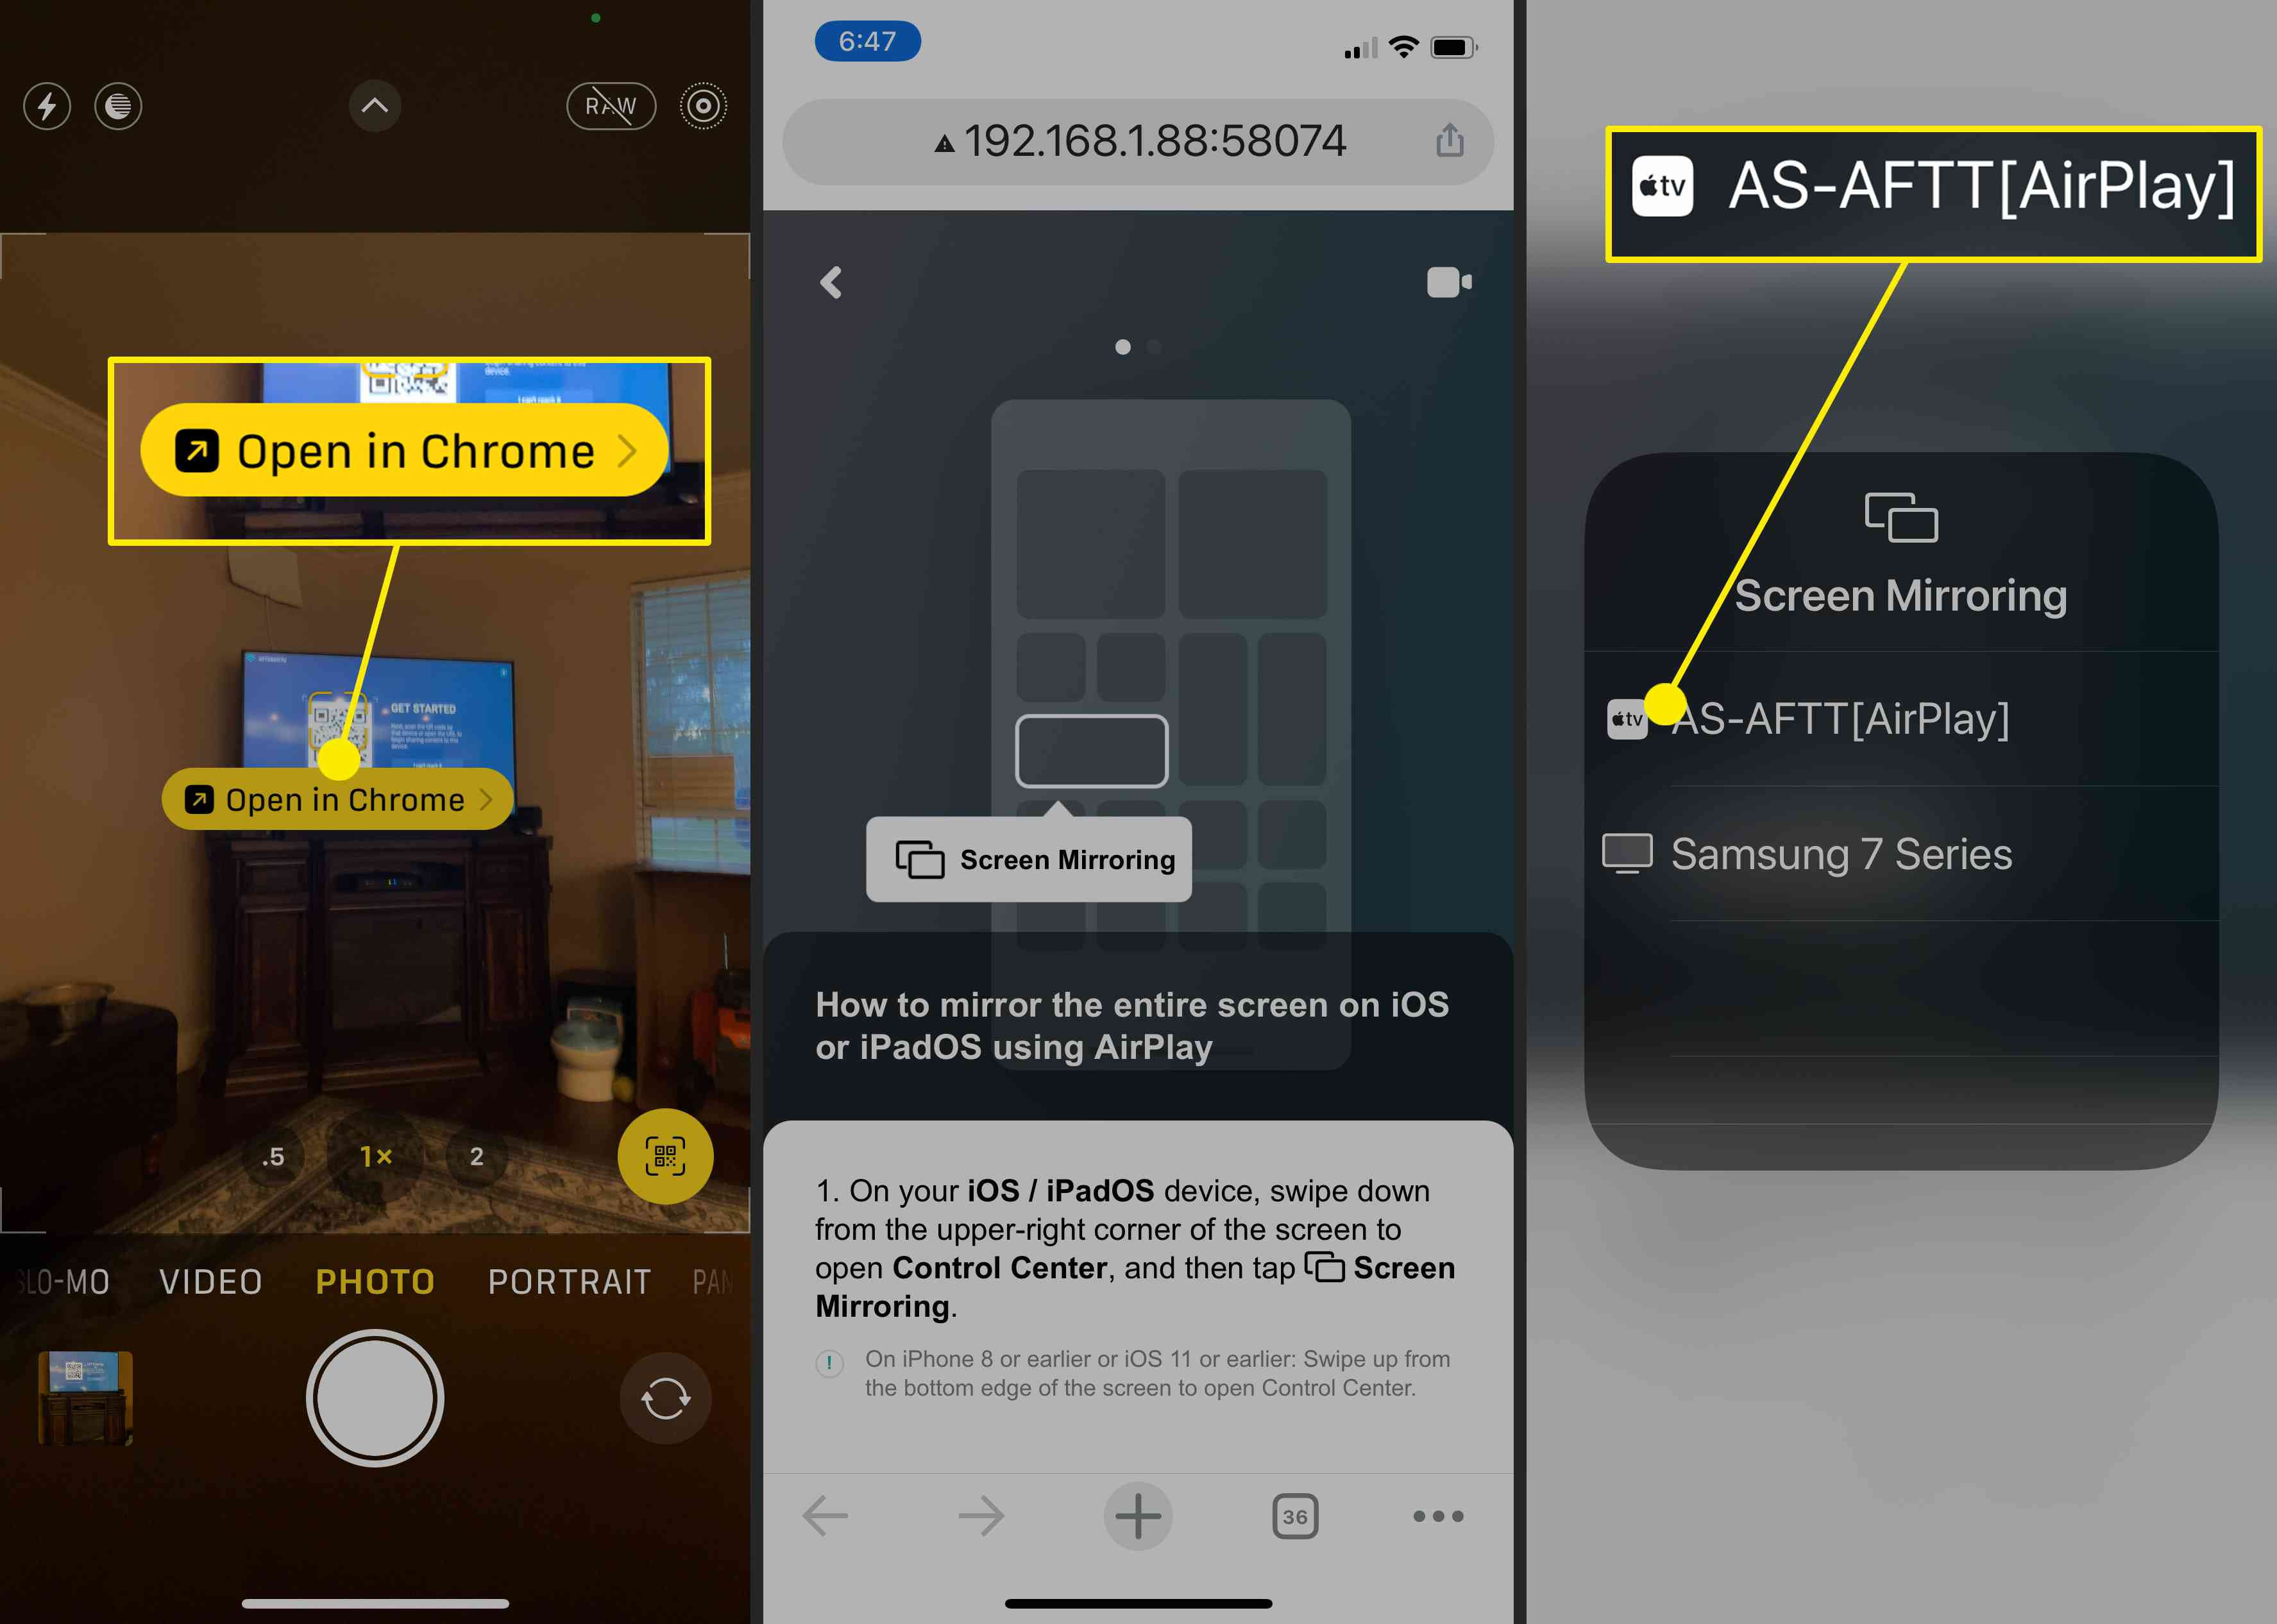 Screenshots showing how to set up AirScreen on the iPhone.